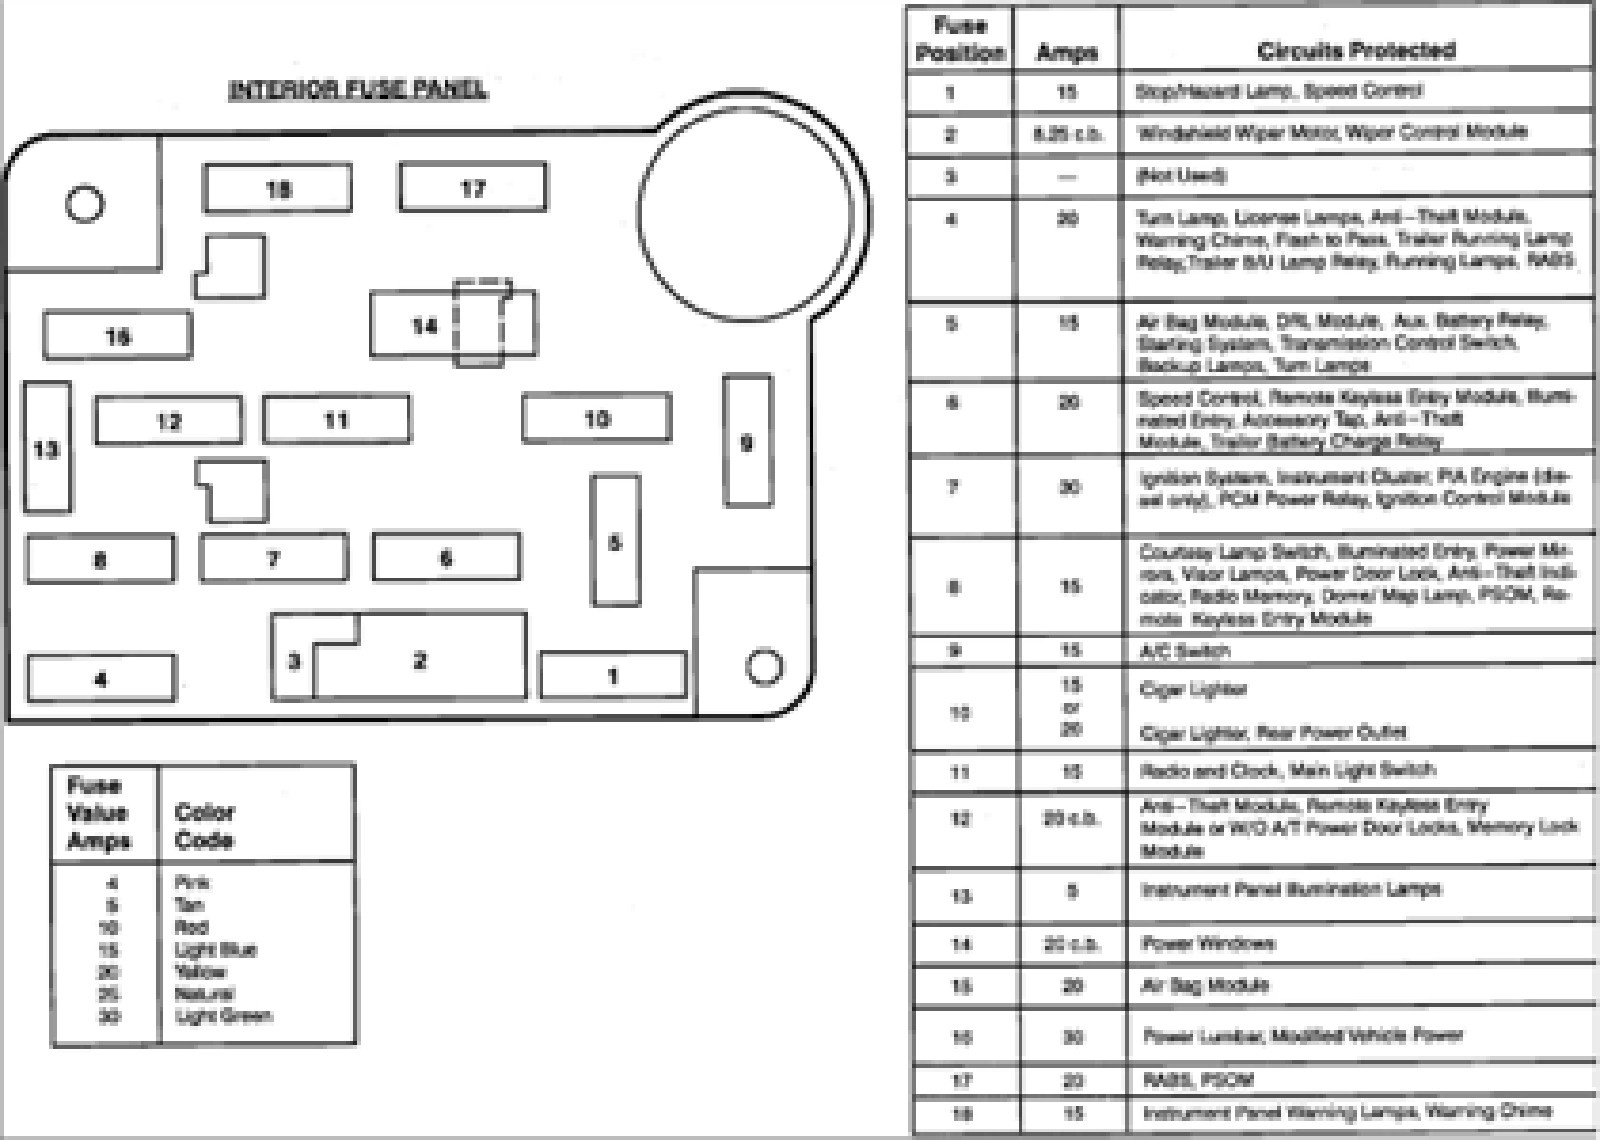 Ford E-150 Questions - Fuse Diagram For A 1993 Ford Econoline Van Mark 3